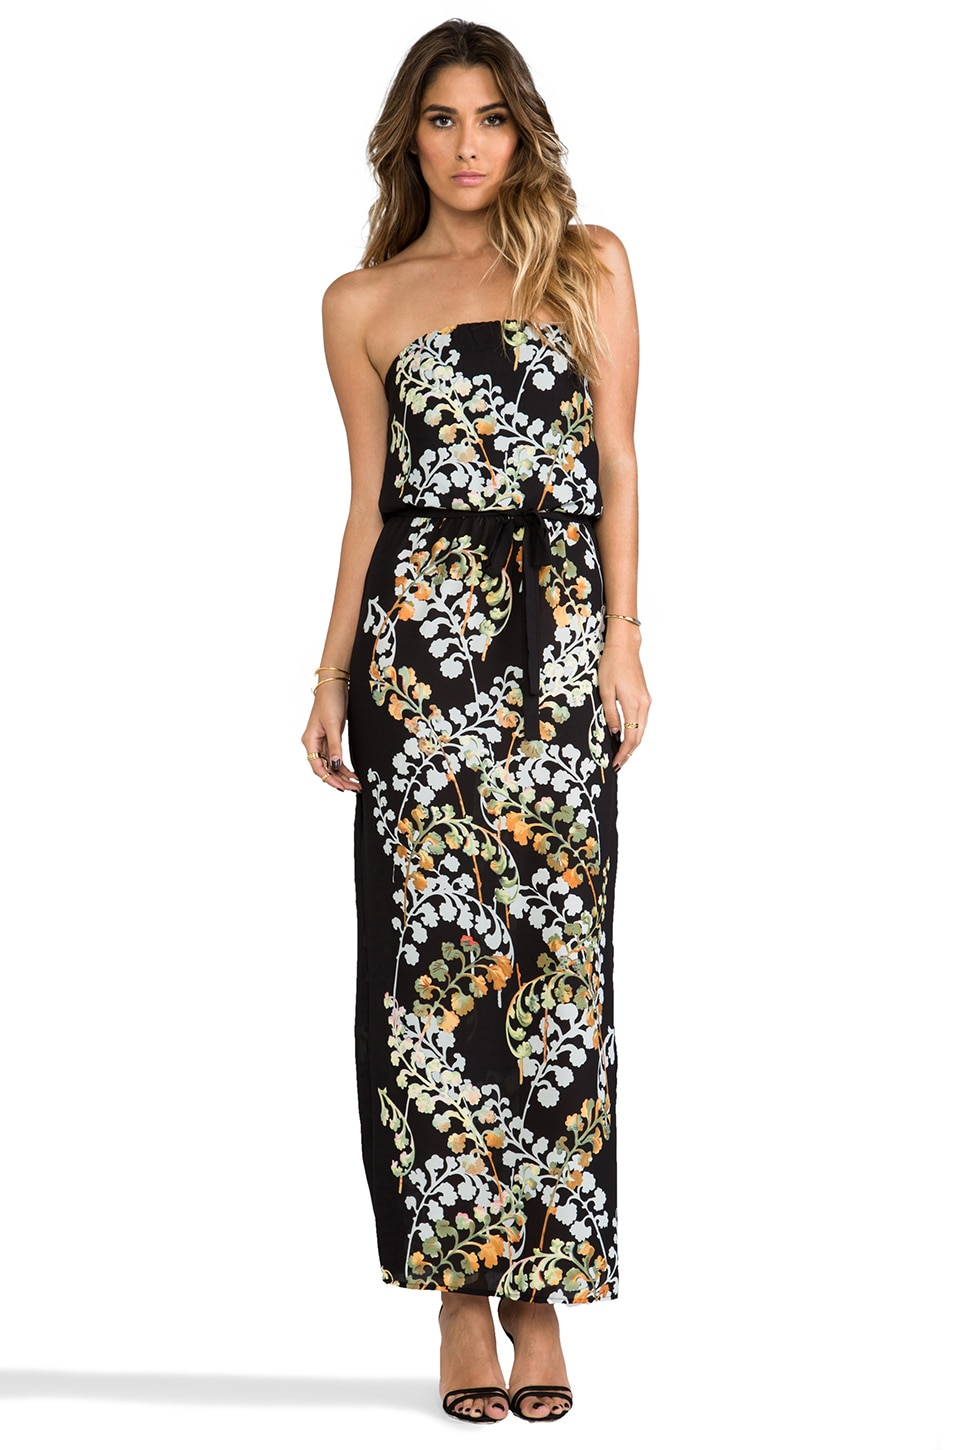 Eight Sixty Strapless Maxi Dress in Black Floral